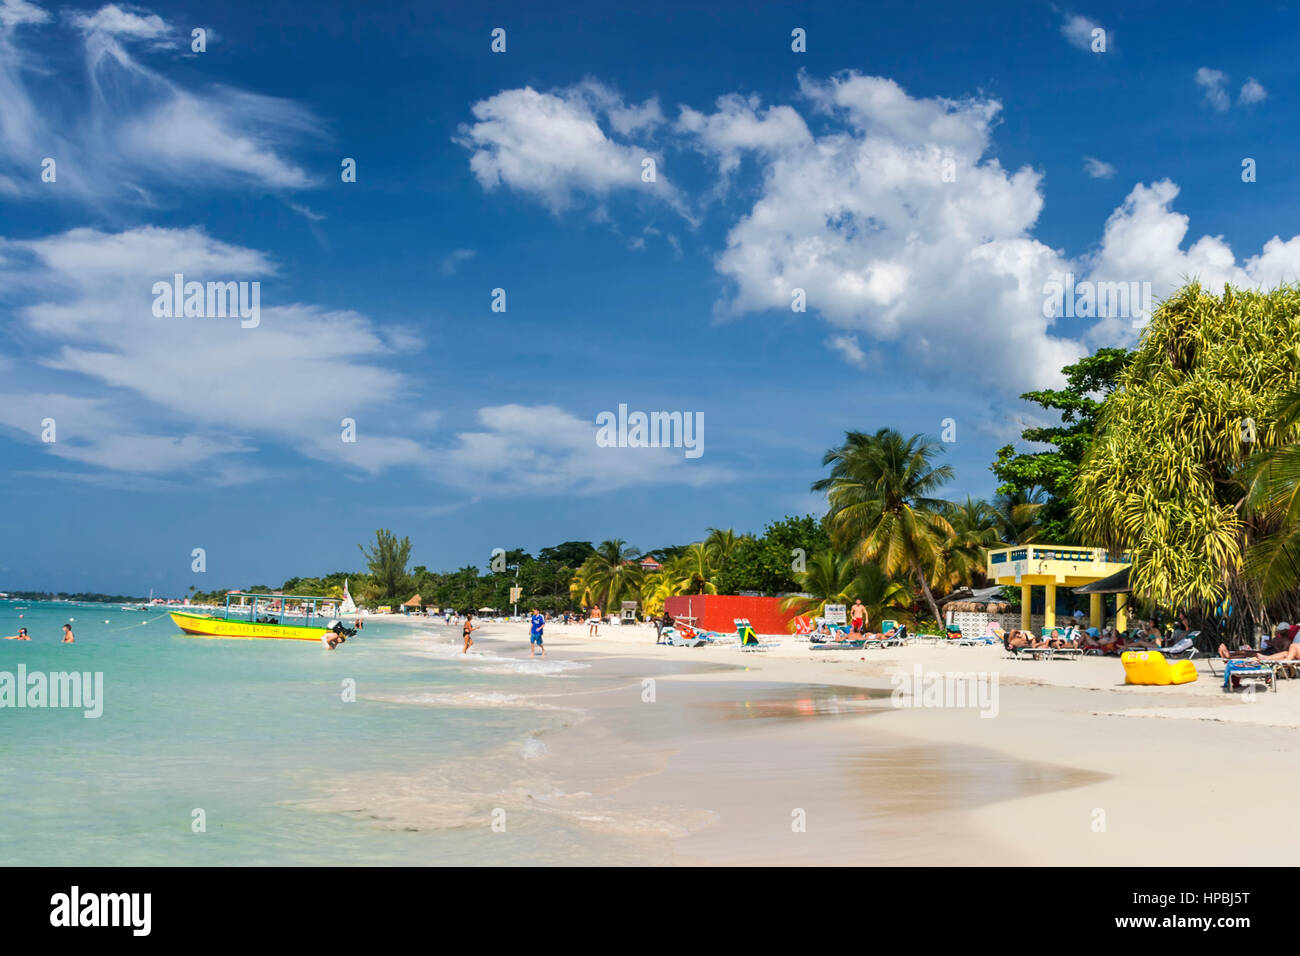 Jamaica Negril beach , West Indies, carribean island - Stock Image